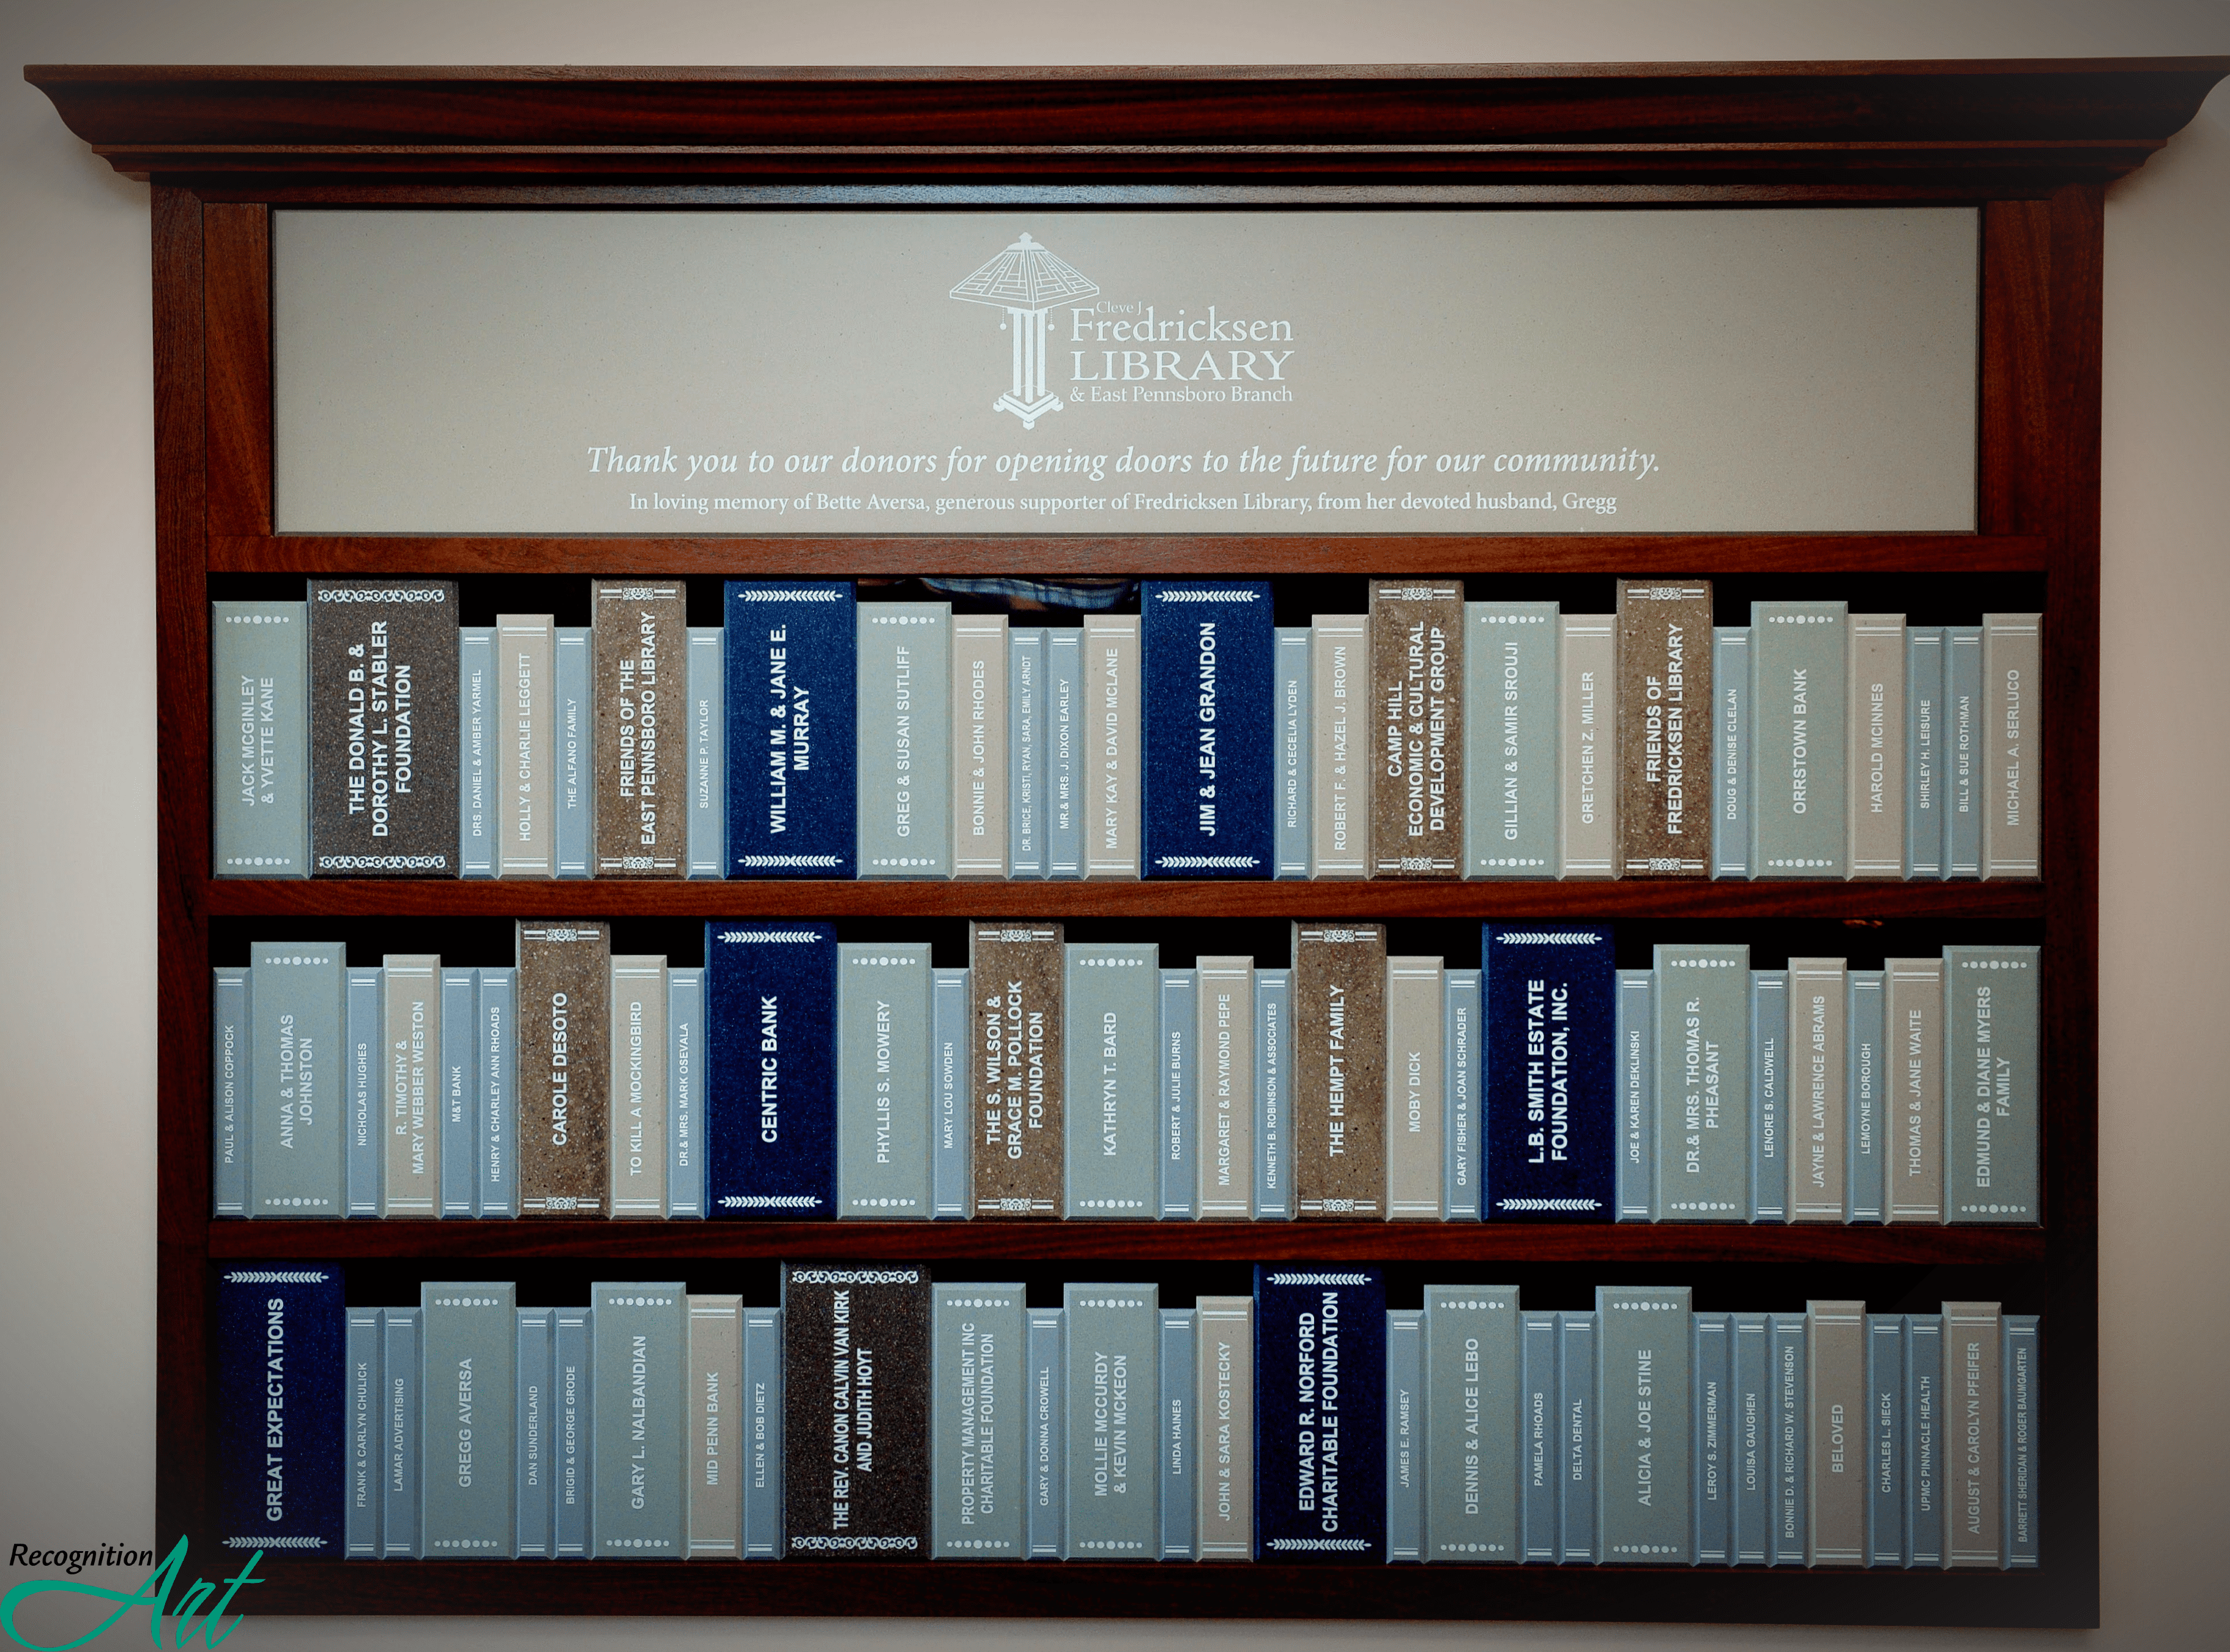 Donor wall made to look like a bookshelf with different sized book spines made of Corian engraved with donor names.